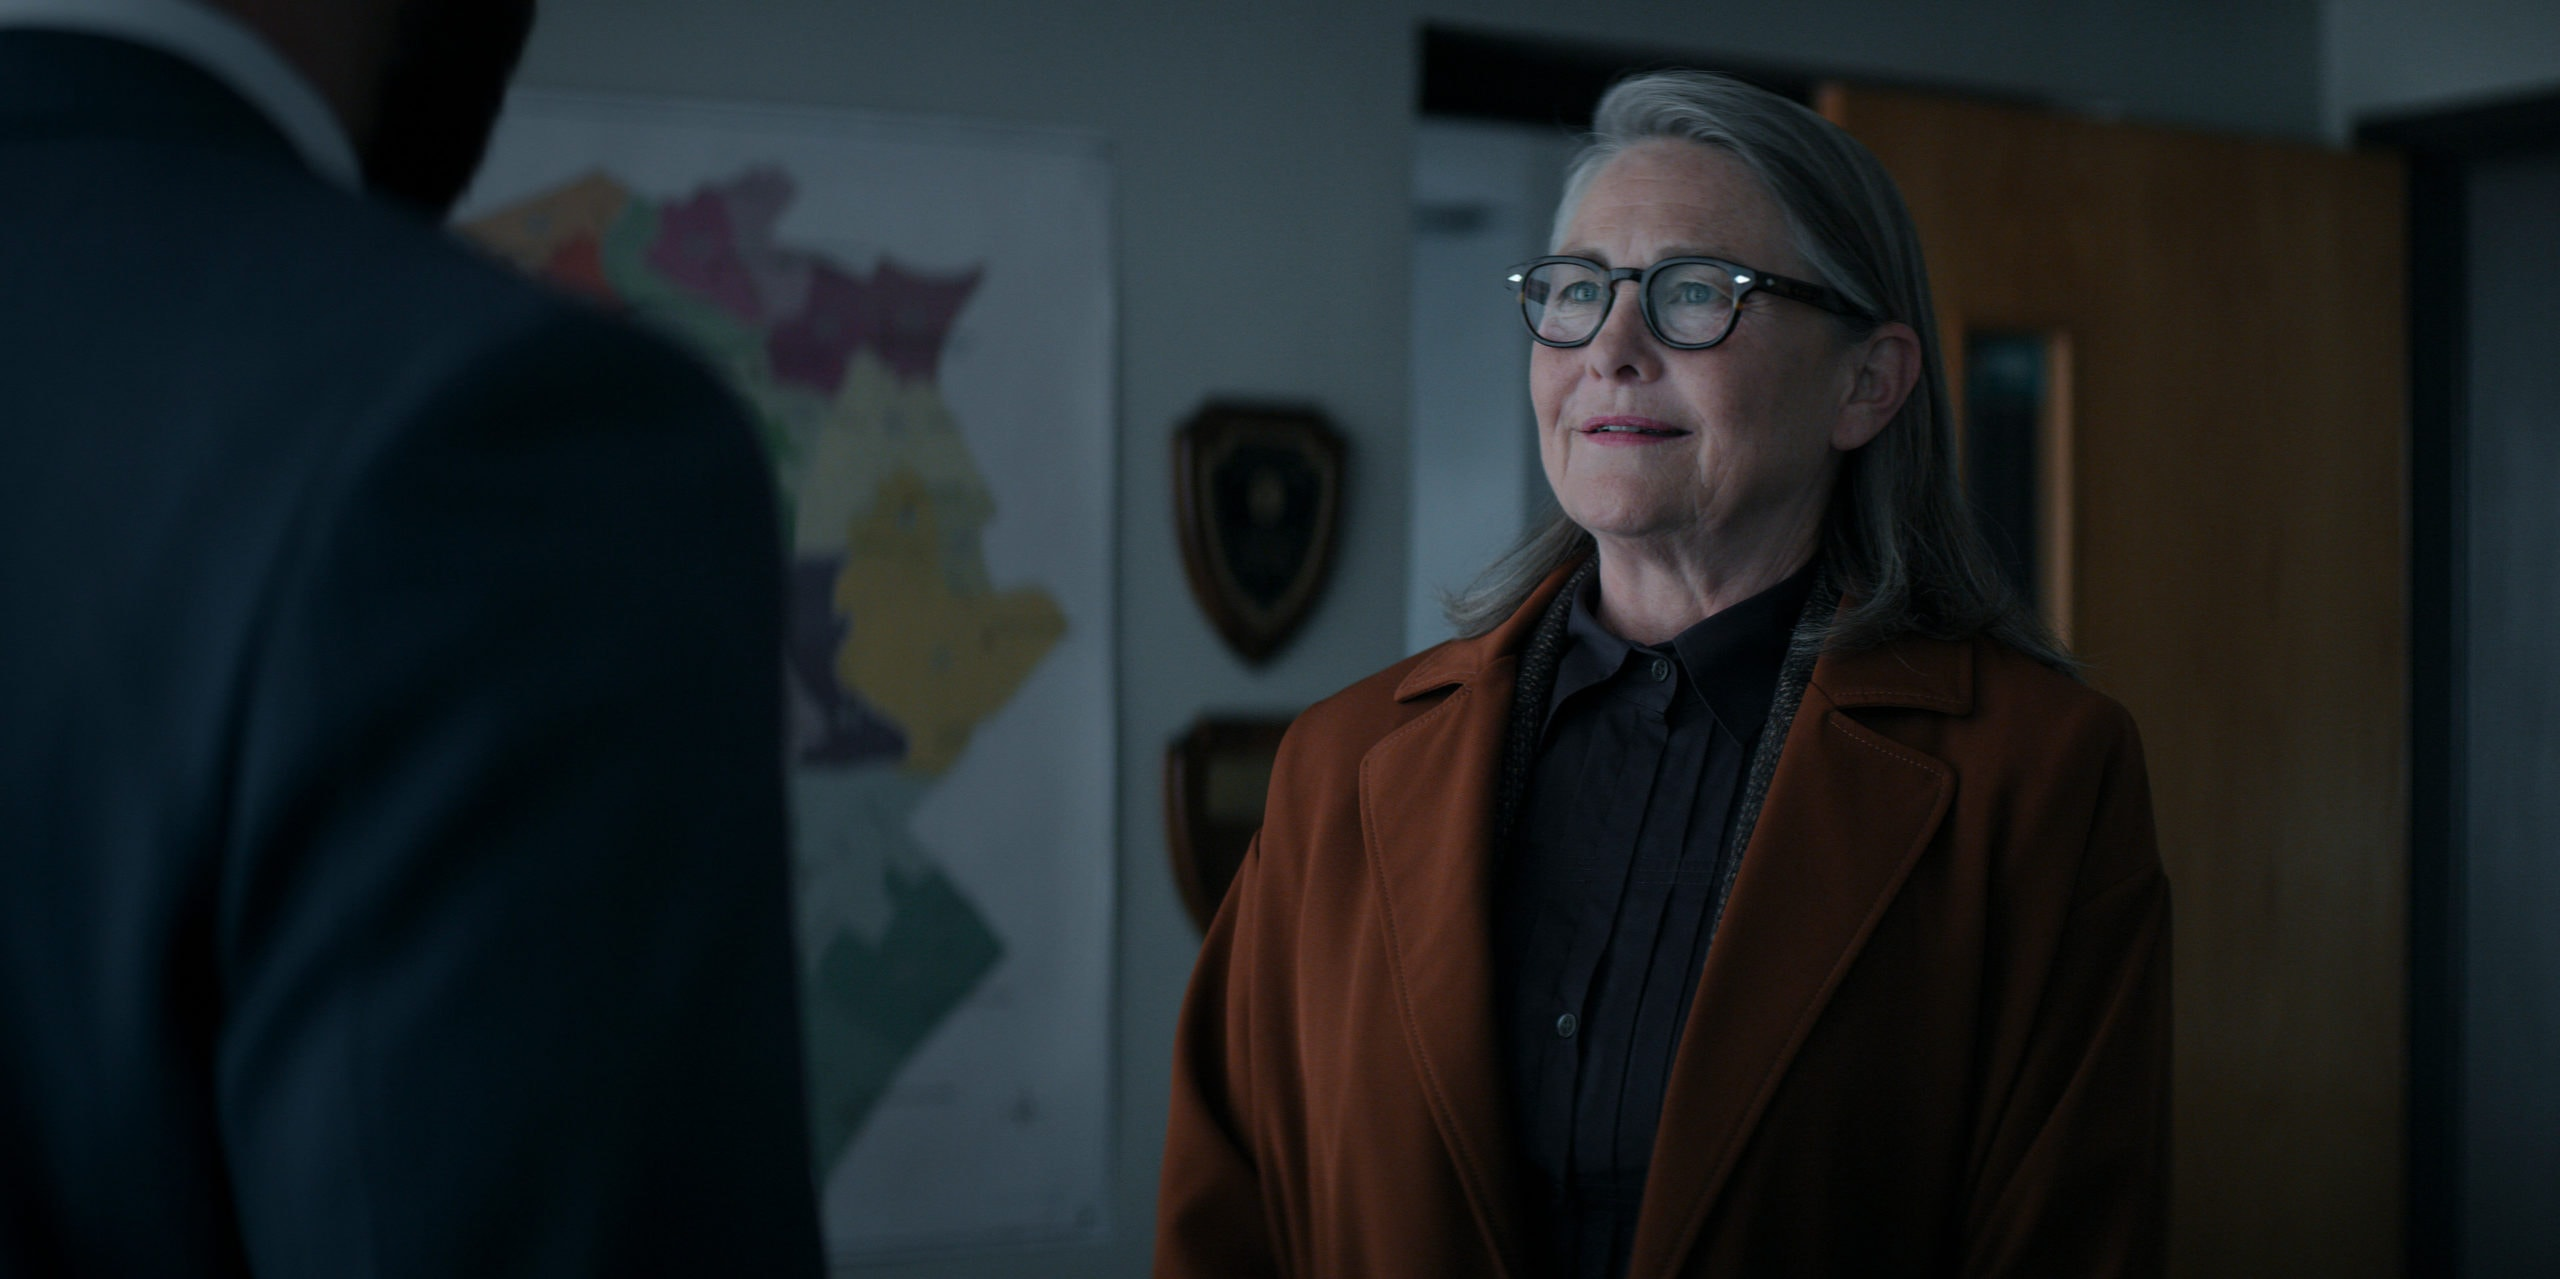 Defending Jacob review: Cherry Jones does typically brilliant work as a sly attorney